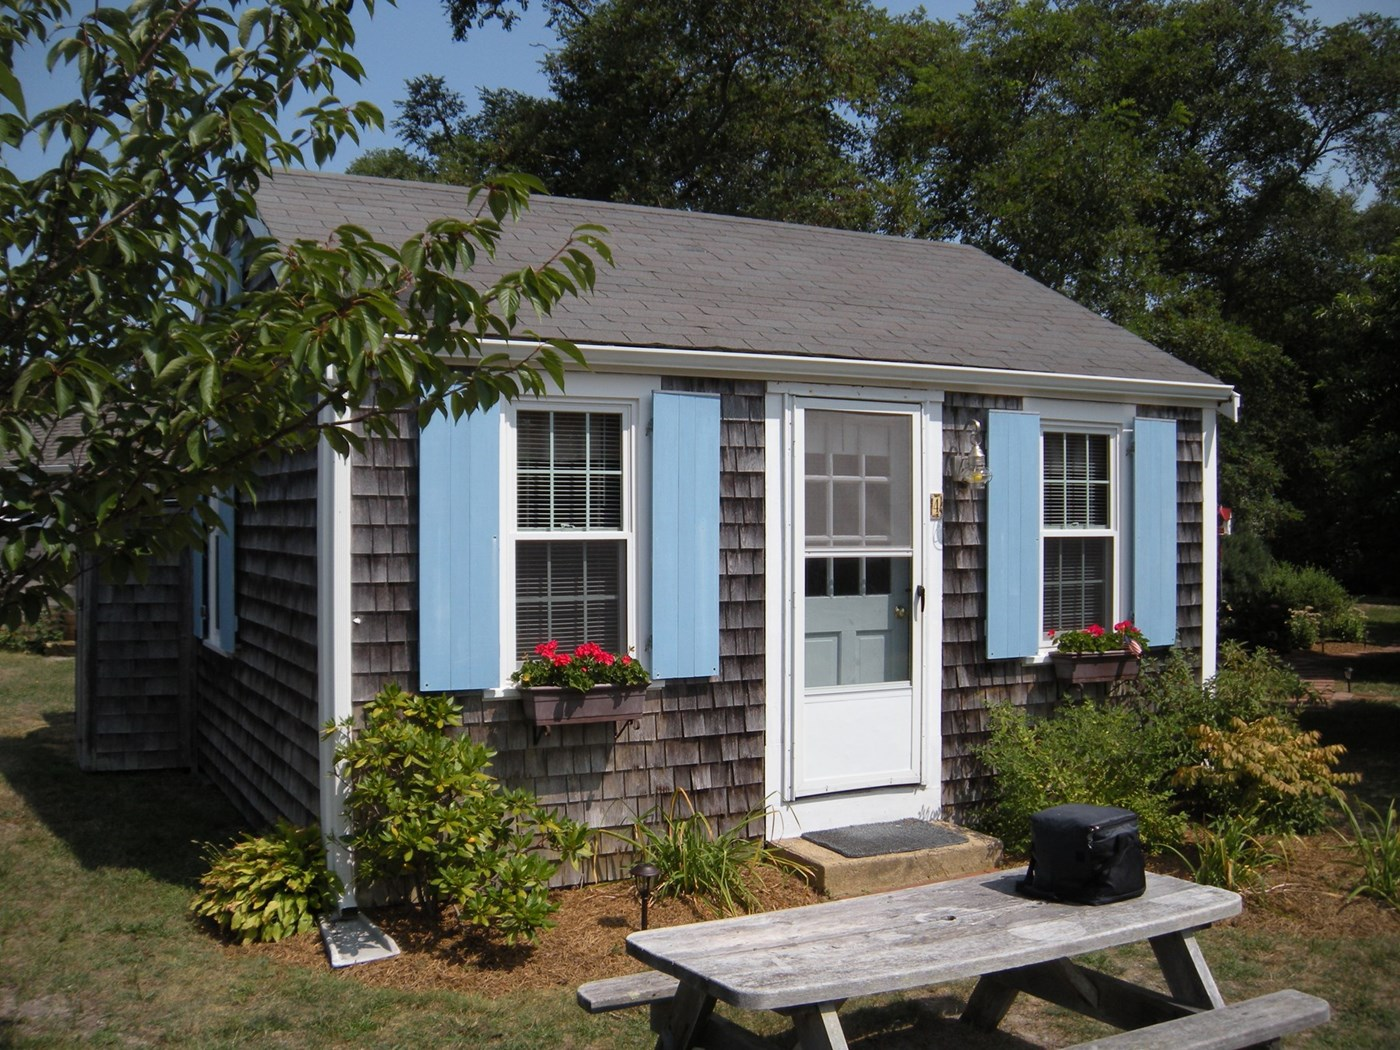 truro vacation rental home in cape cod ma 02652 1 2 mile to beach rh weneedavacation com truro ns cottage rentals truro beach cottage rentals